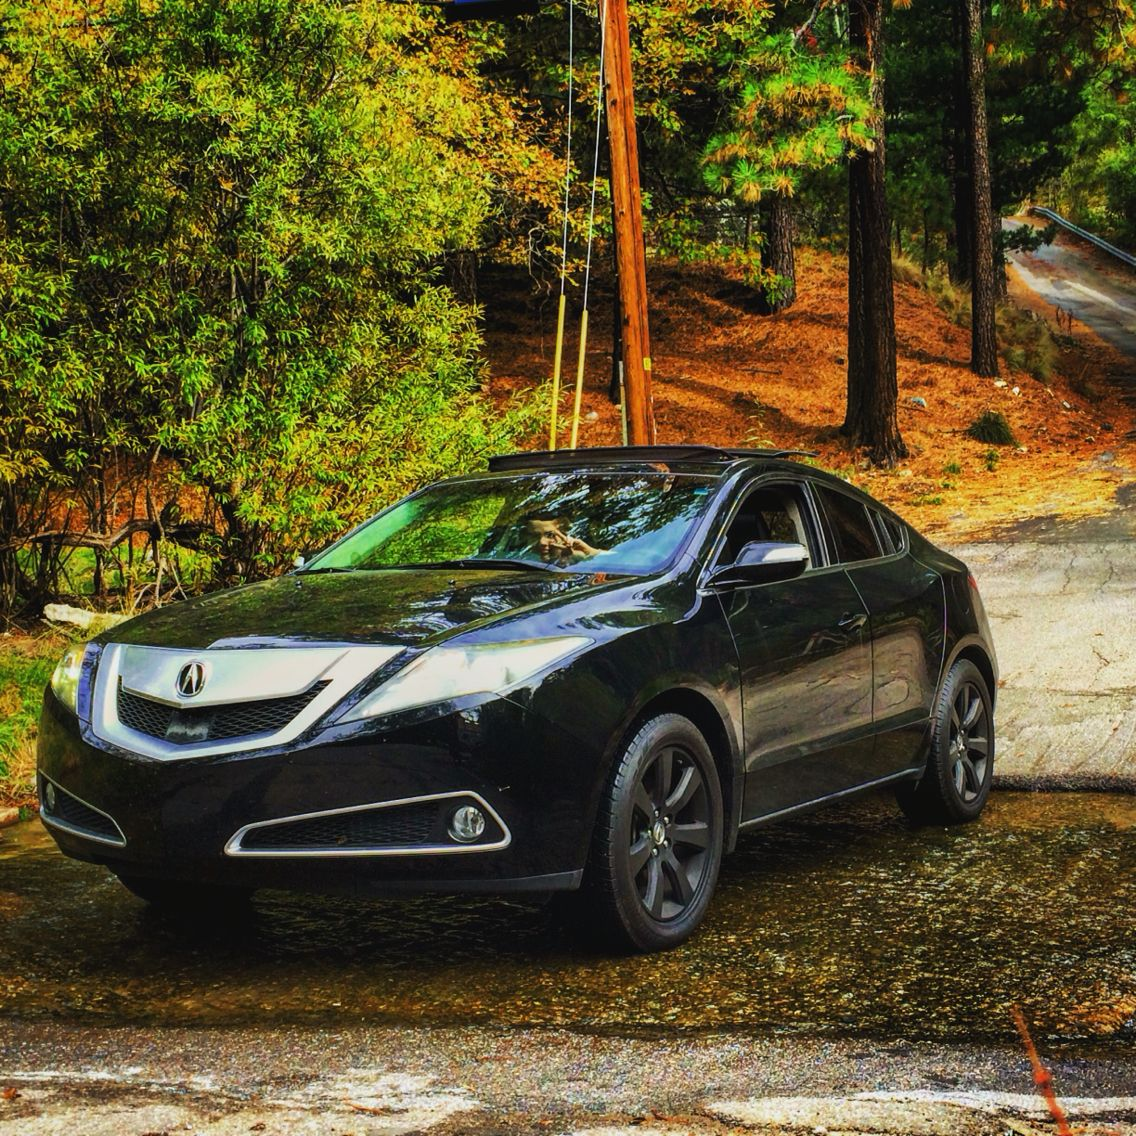 Acura ZDX (With Images)